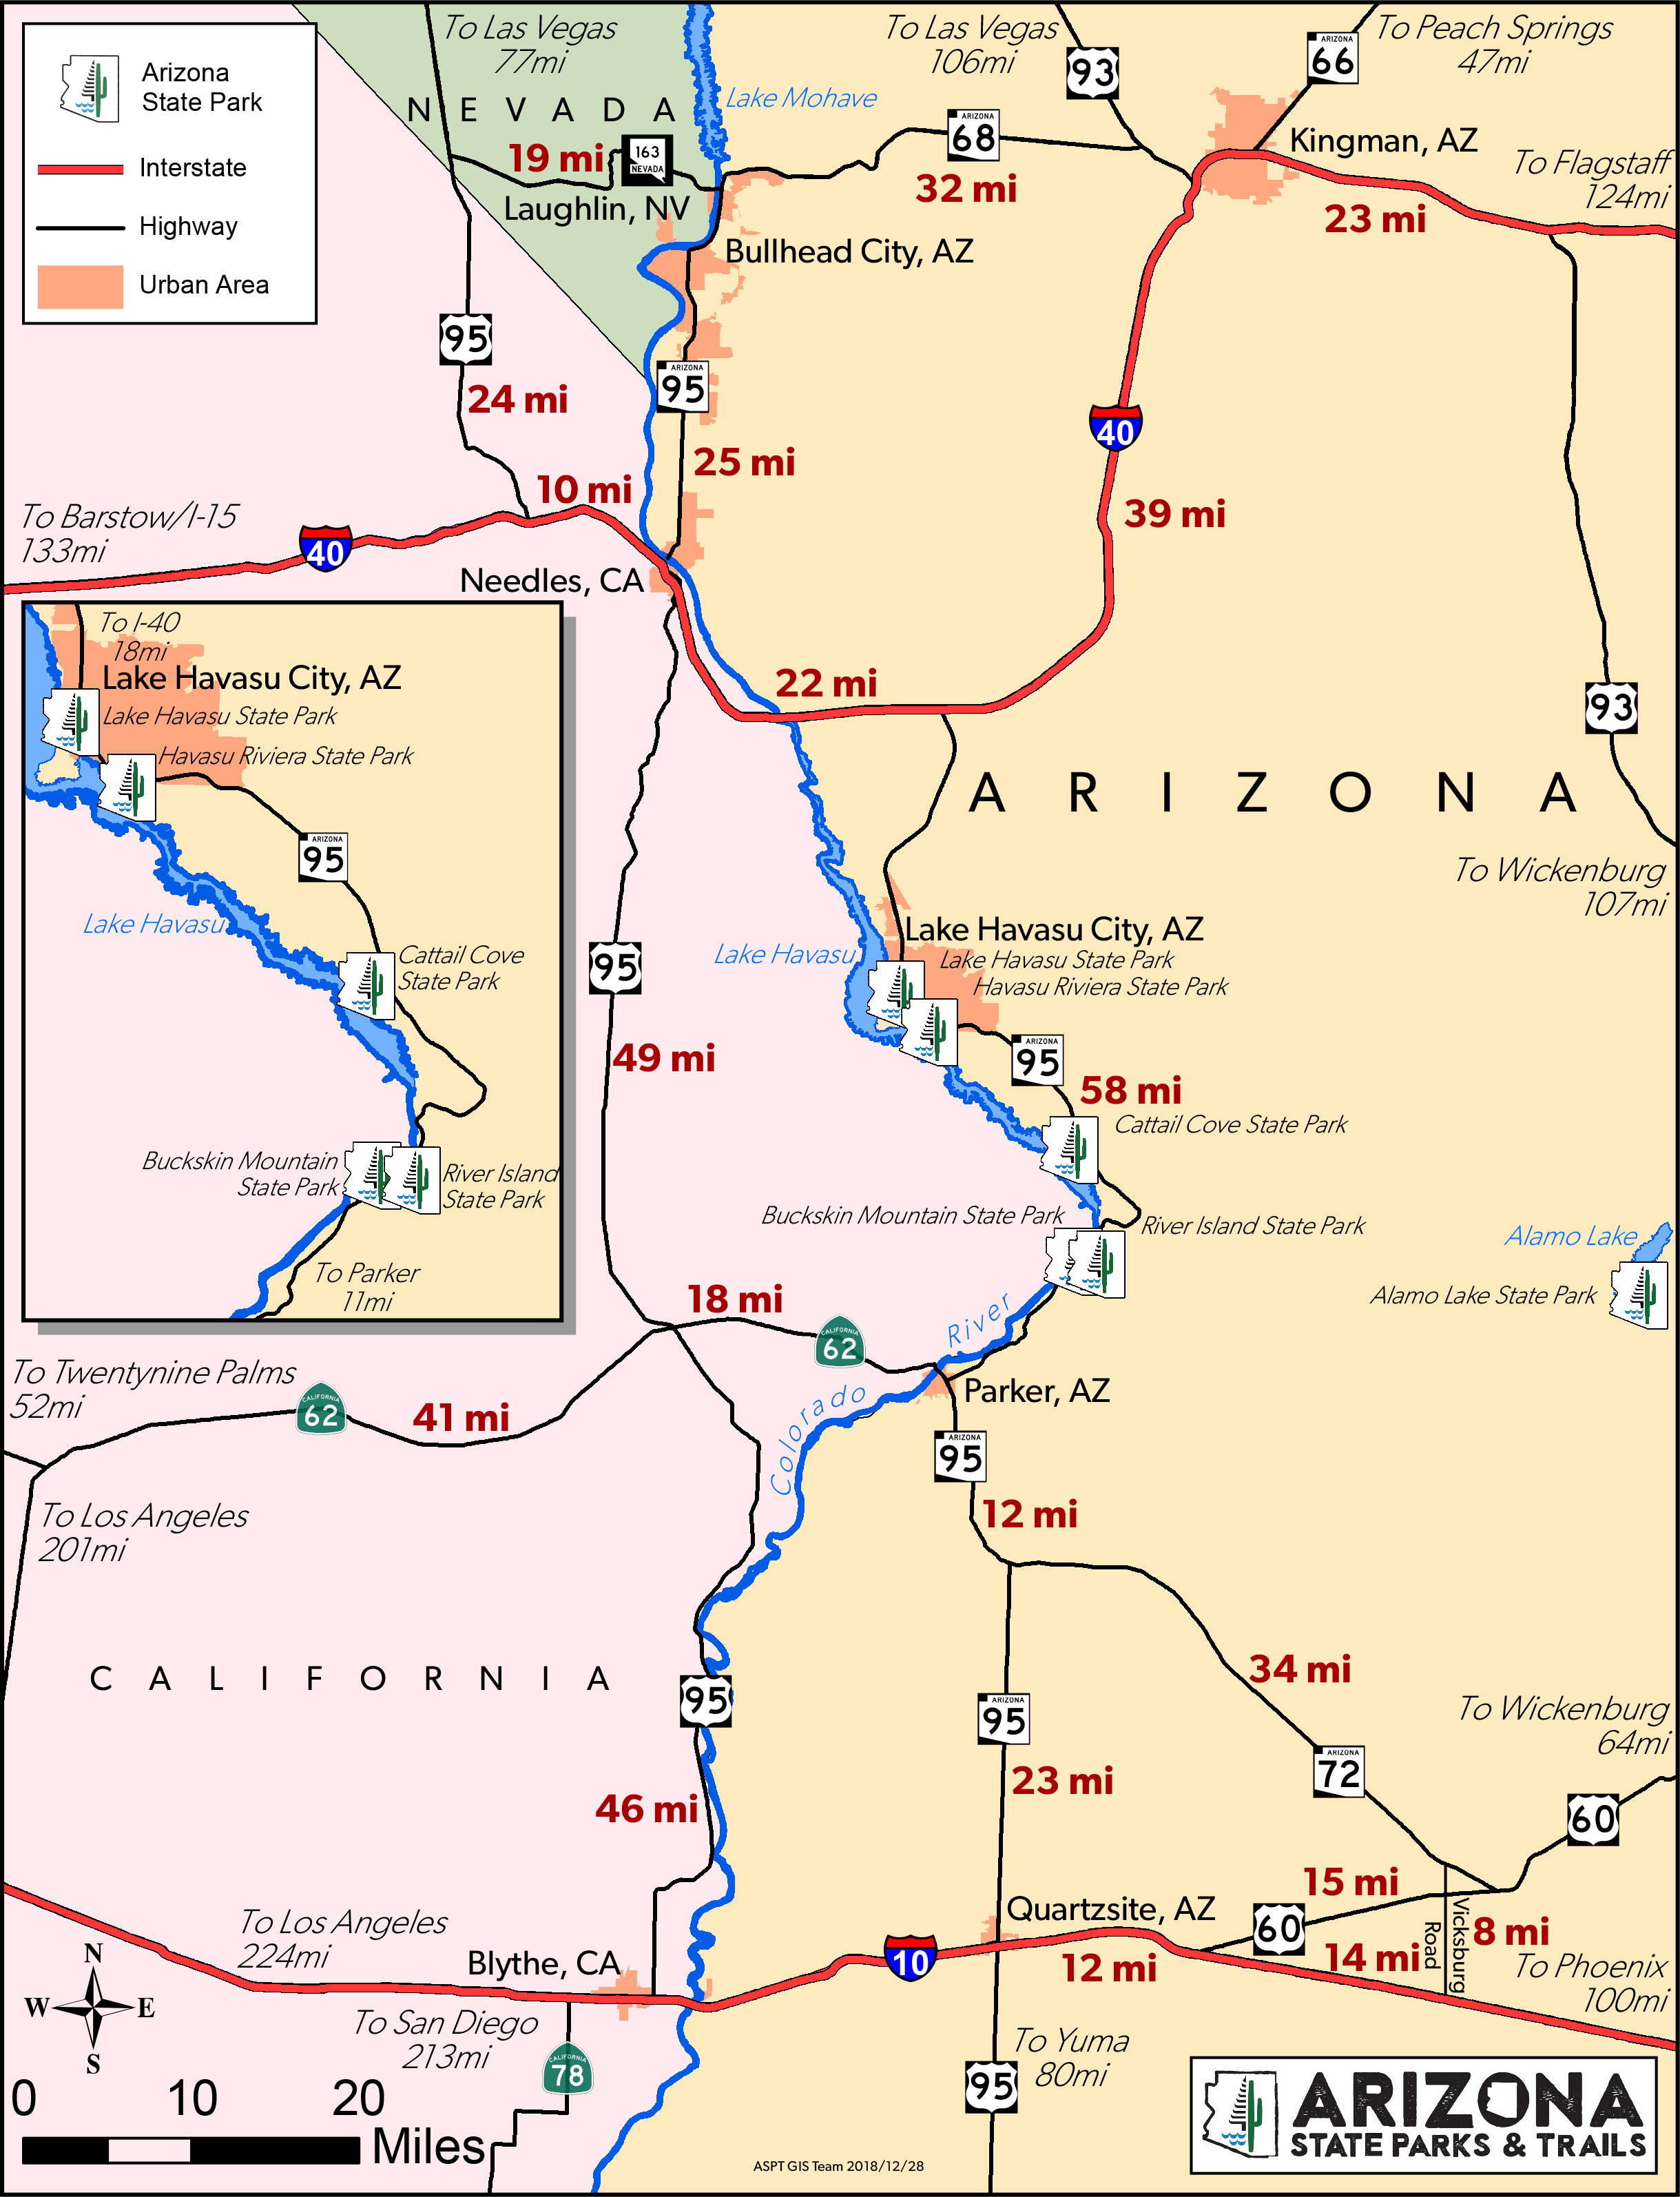 Colorado River Map | Arizona State Parks on california prison inmates, california state county map, california state fair map, california state capitol map, missouri prison map, west virginia prison map, california state department of corrections, alabama prison map, california state hospital police, florida prison map, california state fire map, california state id, nys prison map, california state natural resources, connecticut prison map, minnesota prison map, california state highway 15, california state route 20, california state wrestling tournament, california state pretty map,